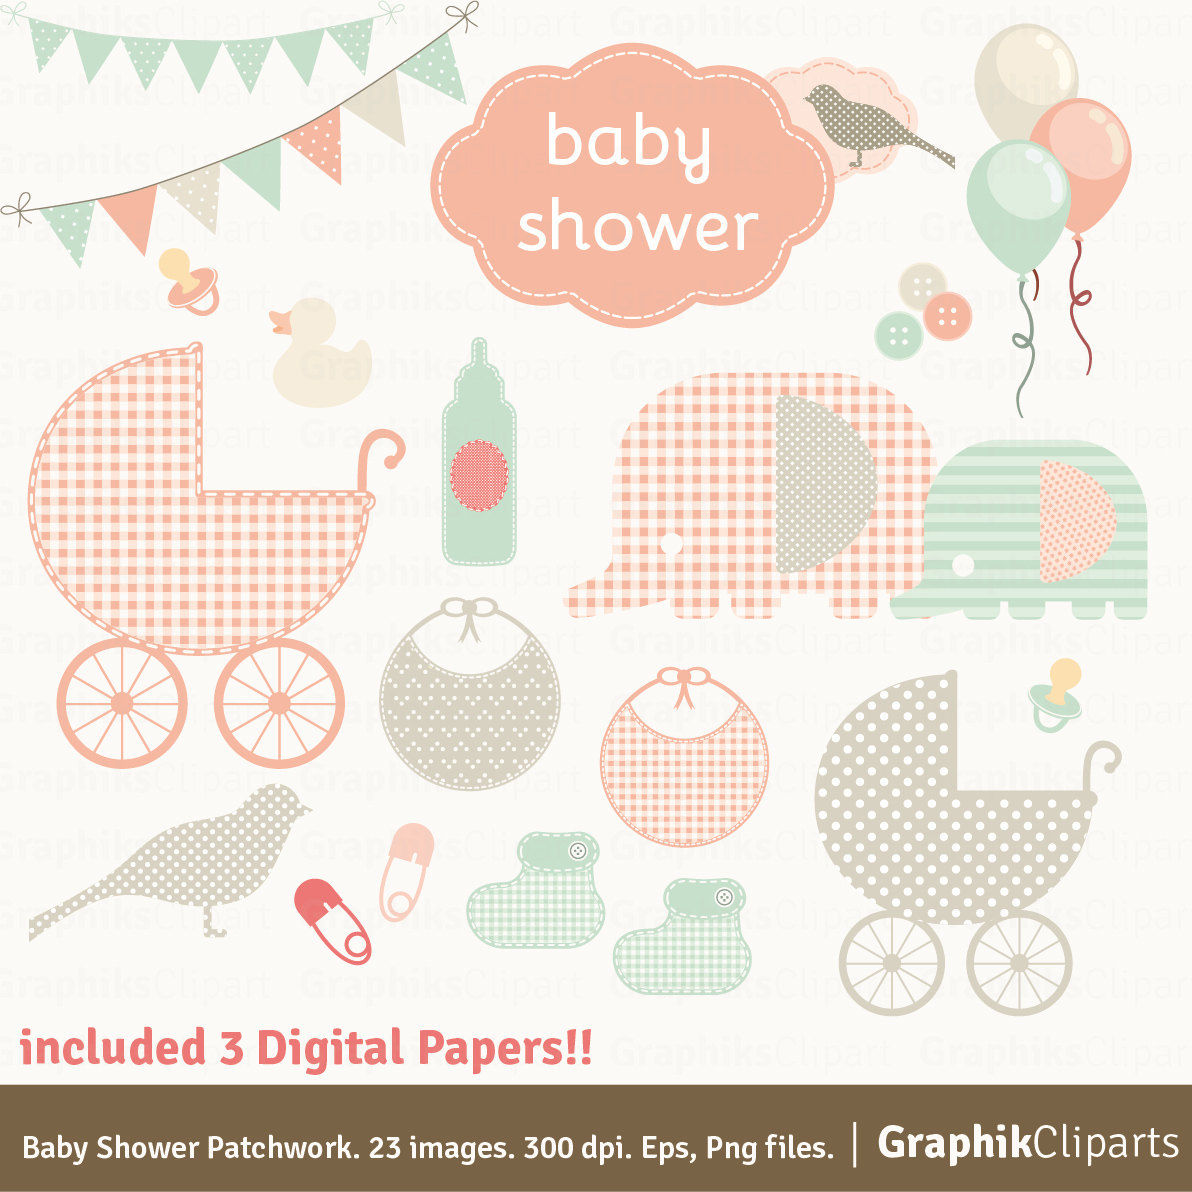 Patchwork clipart baby shower Patchwork is Baby CLIPART a